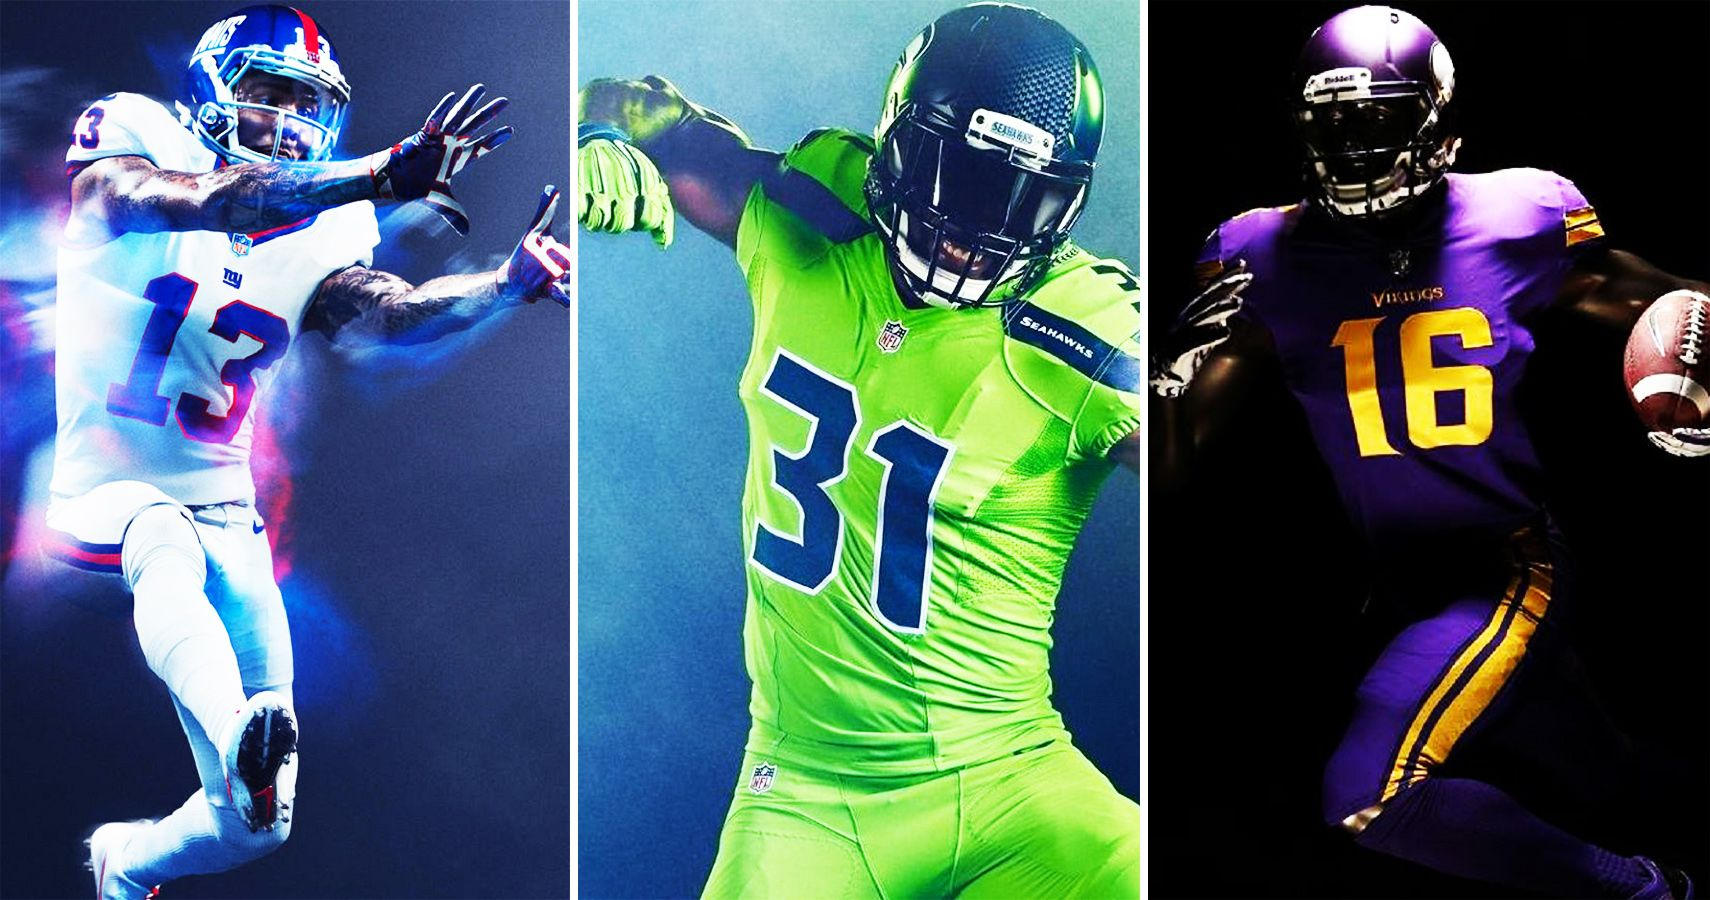 ec8852289a0 Ranking All 32 NFL Color Rush Uniforms | TheSportster